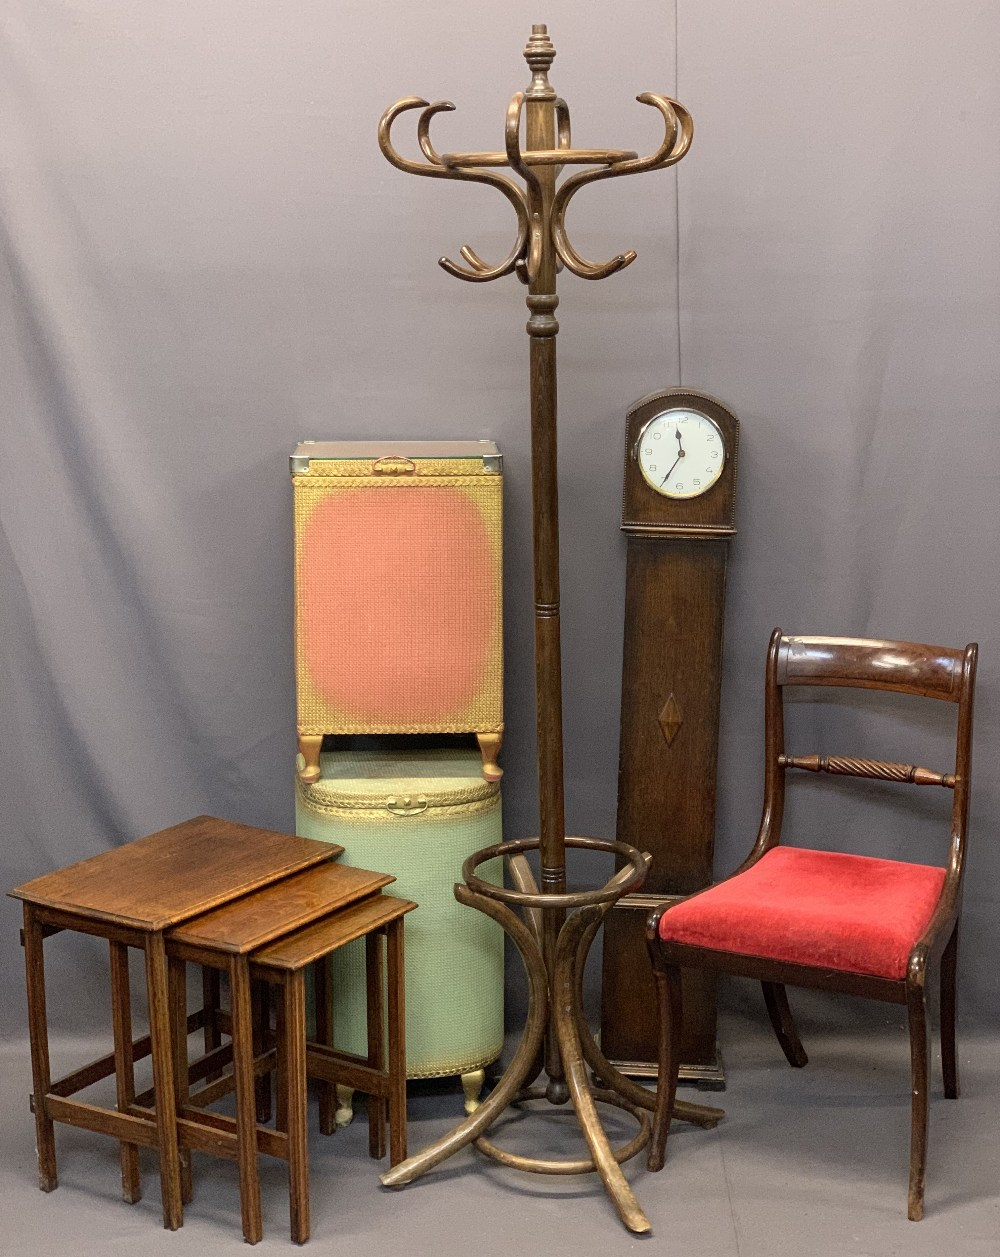 VINTAGE & LATER FURNITURE PARCEL, 6 ITEMS - a set of three oak occasional tables, two Lloyd Loom